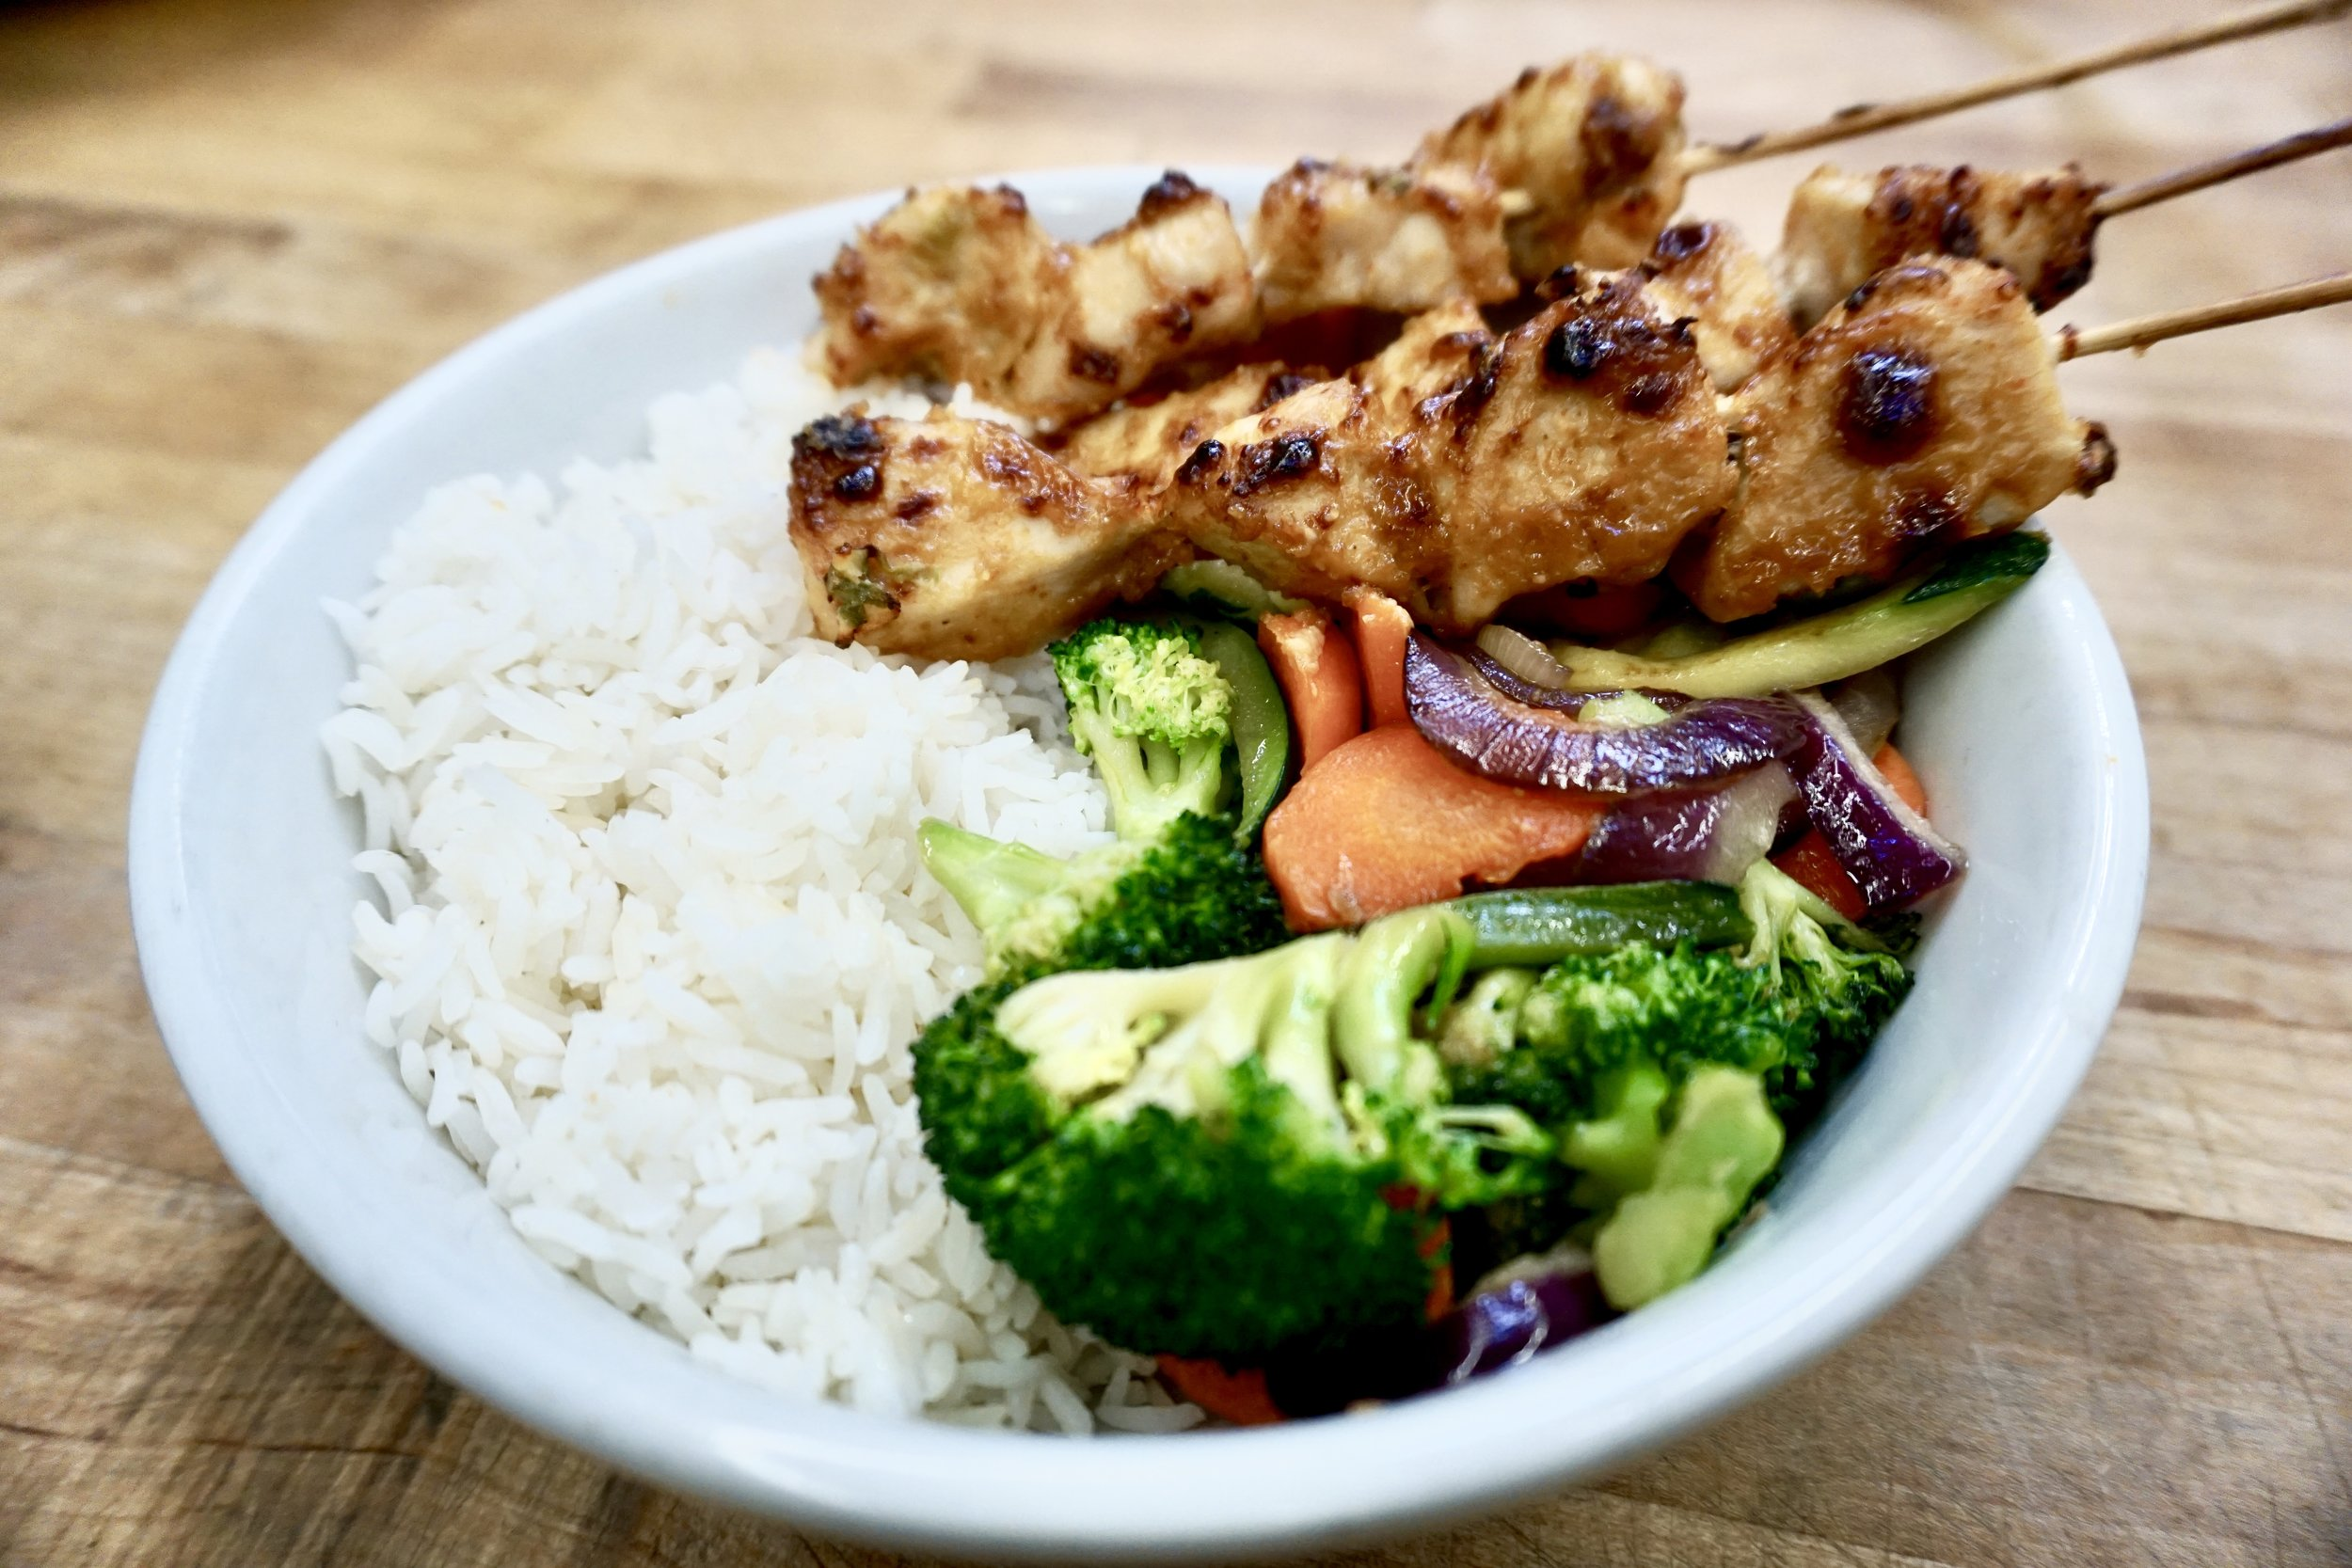 April Cafe Special - Check out our Roasted Peanut Satay Chicken Skewer Bowl served with seasonal vegetables over a bed of Jasmine rice available at all cafe locations.